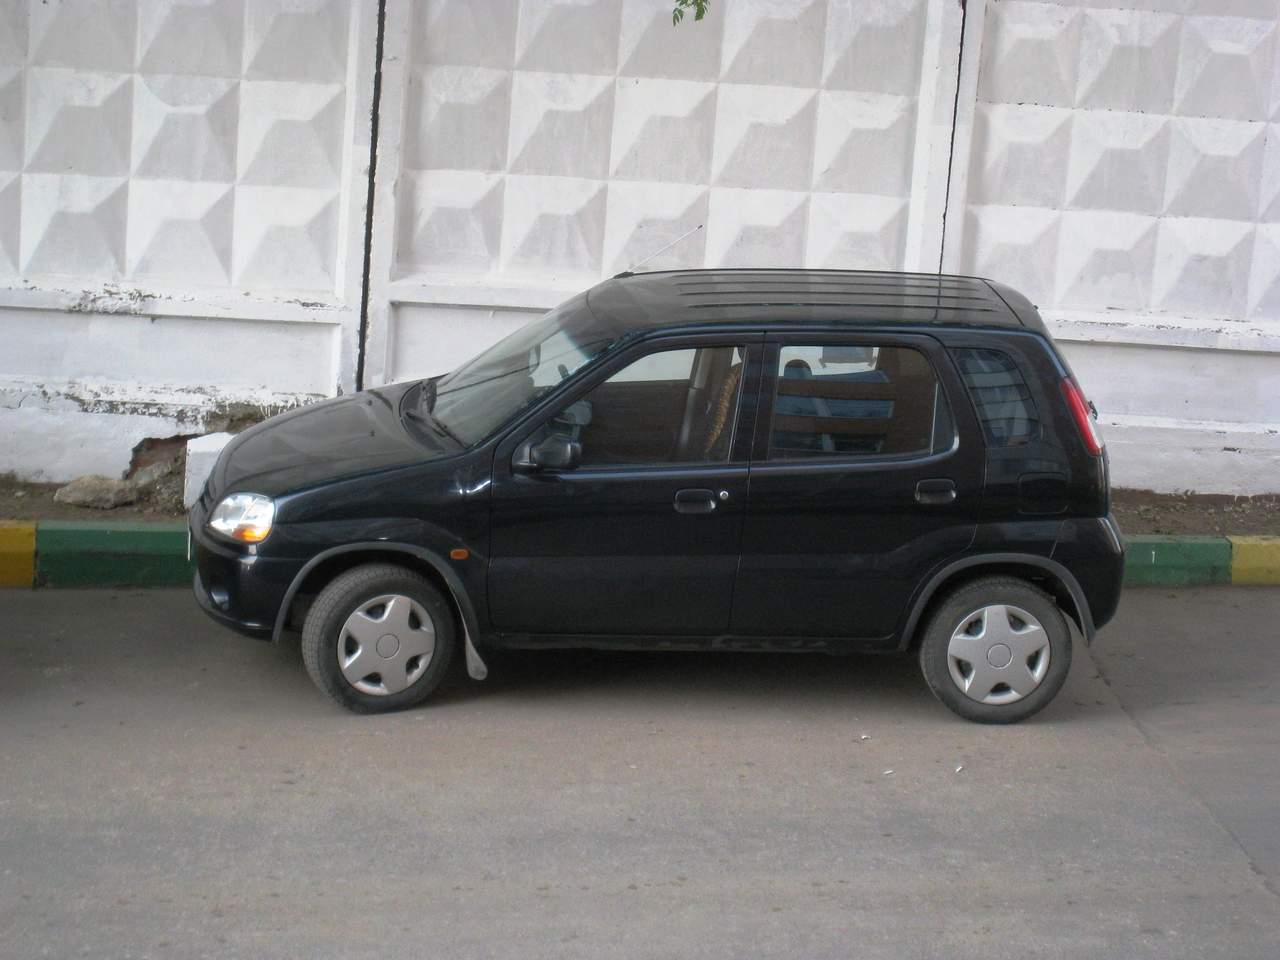 2002 Suzuki Ignis Wallpapers 13l Gasoline FF Manual For Sale